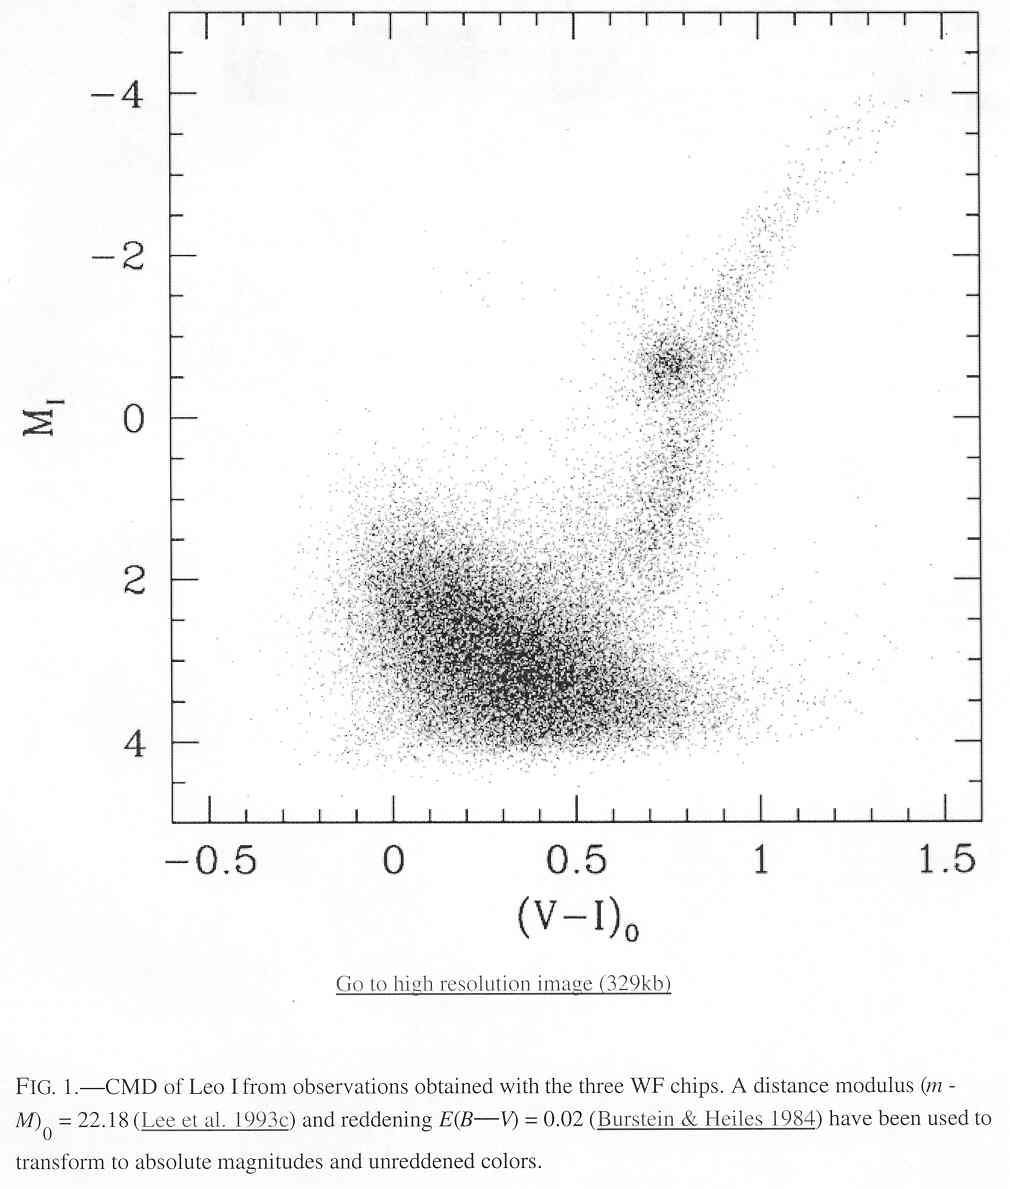 hight resolution of age models and tiny galaxies